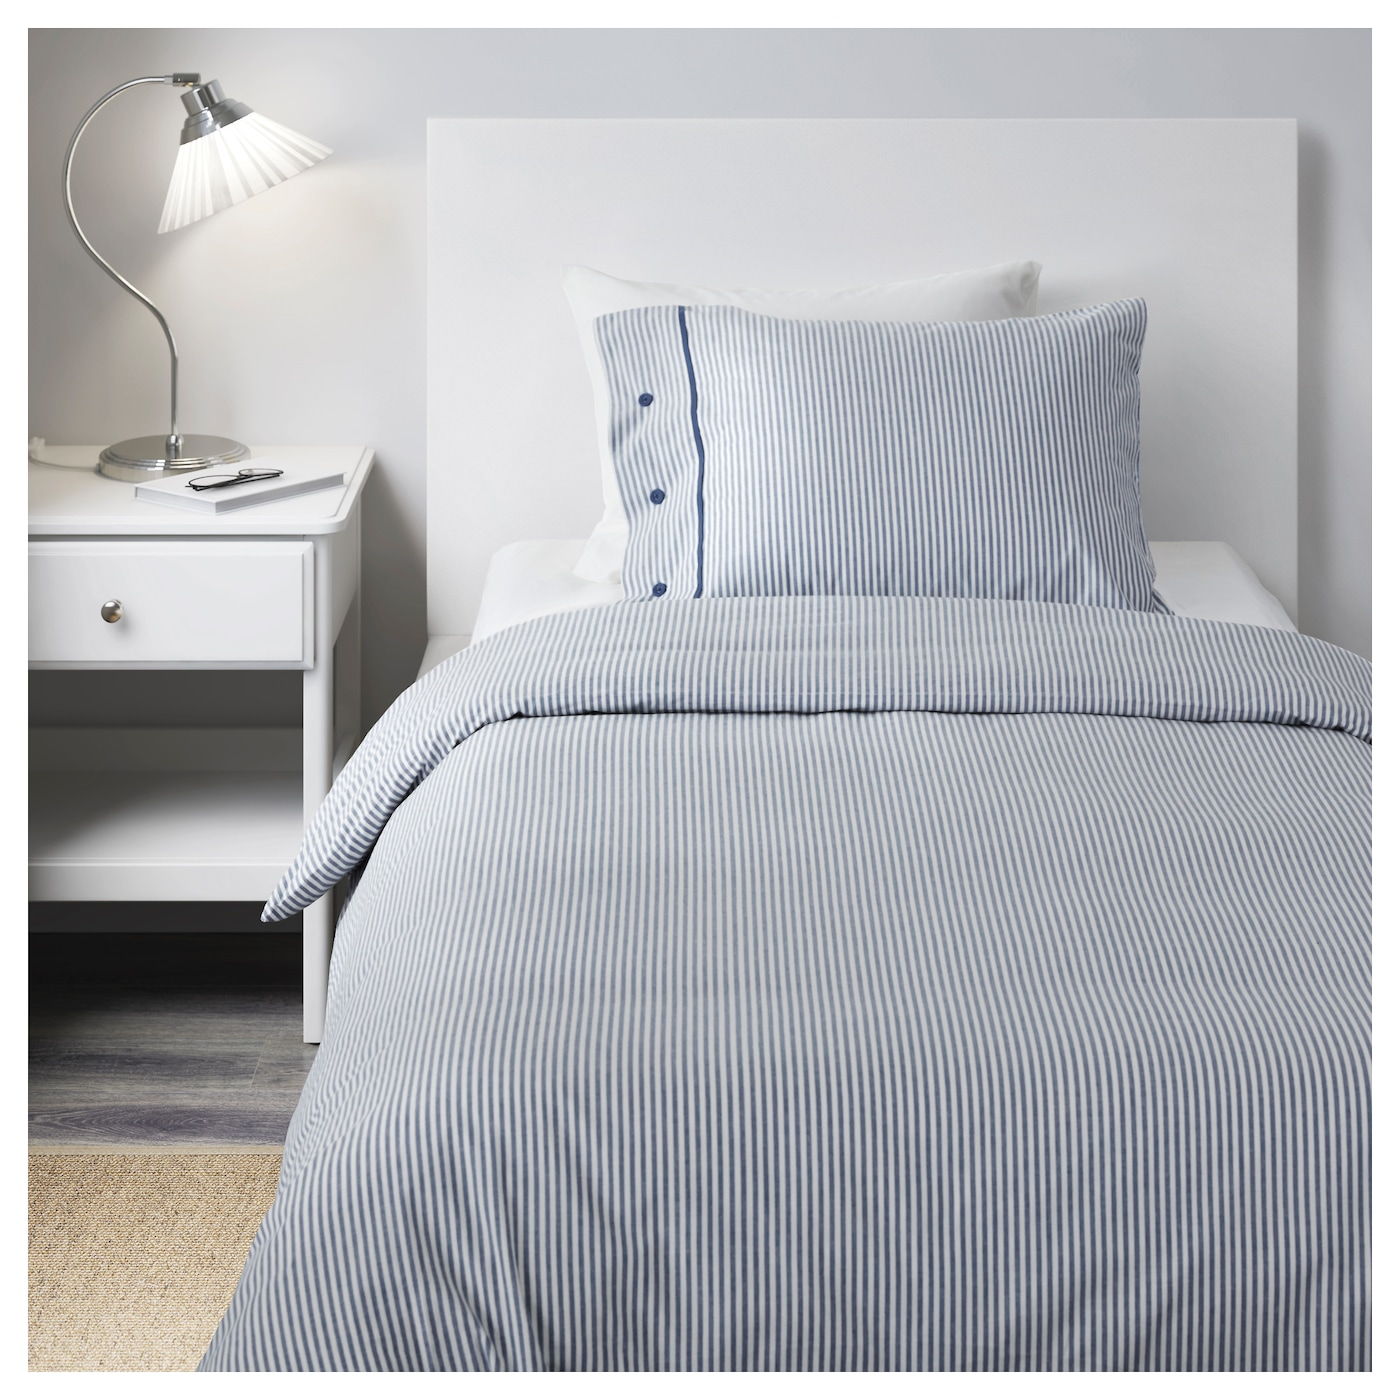 Design Ikea Bedding nyponros quilt cover and 2 pillowcases whiteblue 150x20050x80 cm ikea pillowcases